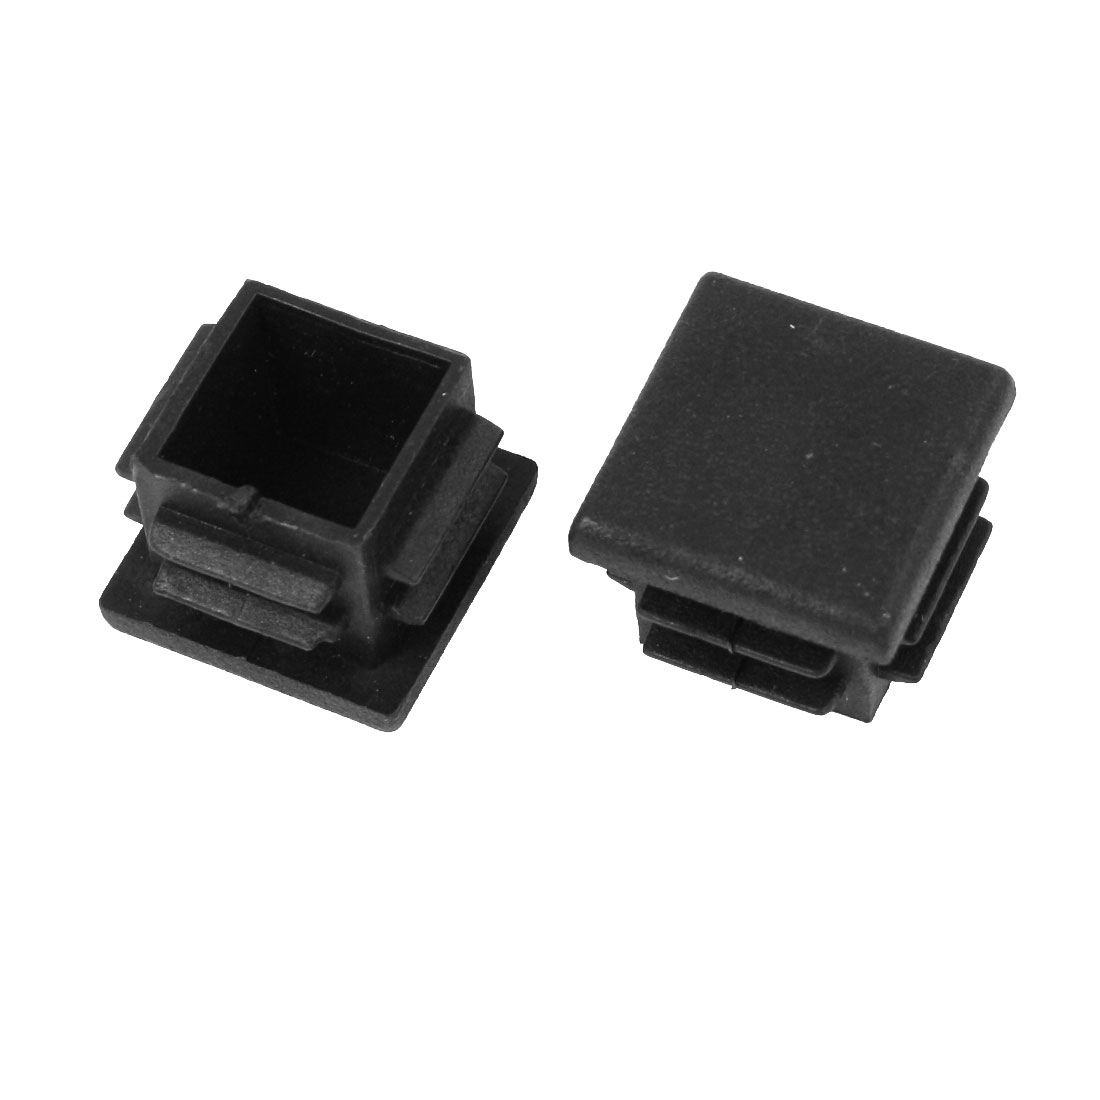 2 Pcs 19mm x 19mm Plastic Blanking End Caps Square Tubing Tube Insert Black